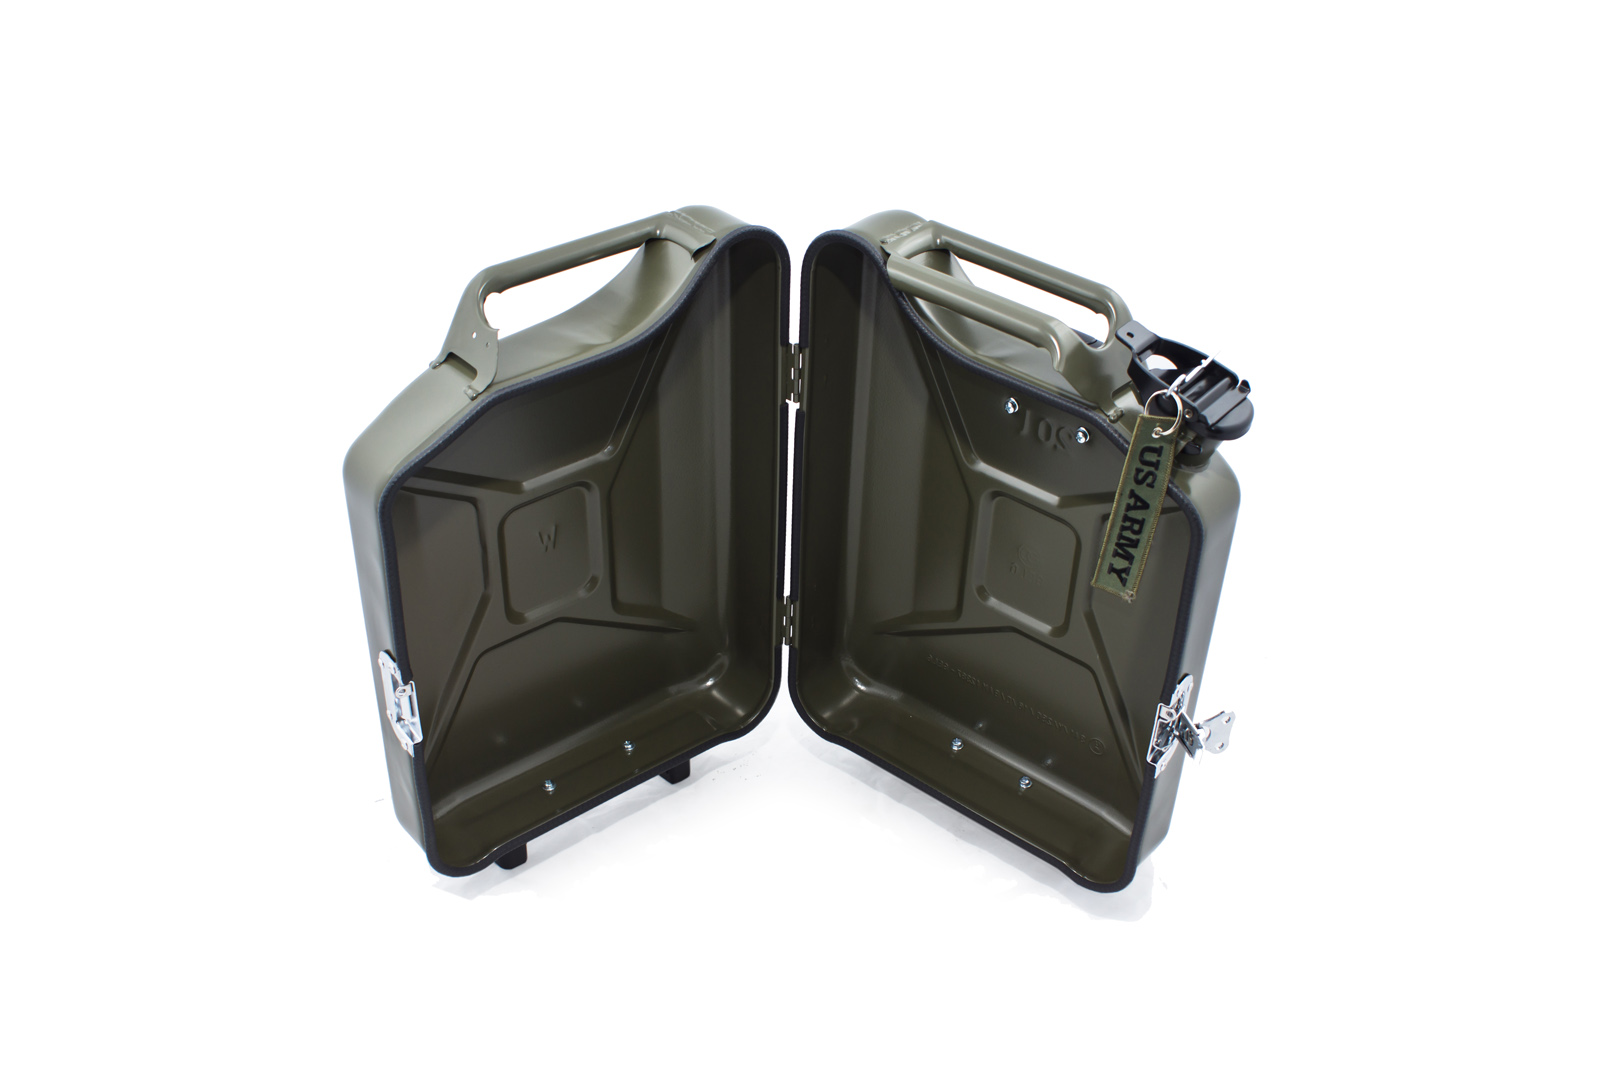 armygreen G-case jerrycan luggage 5